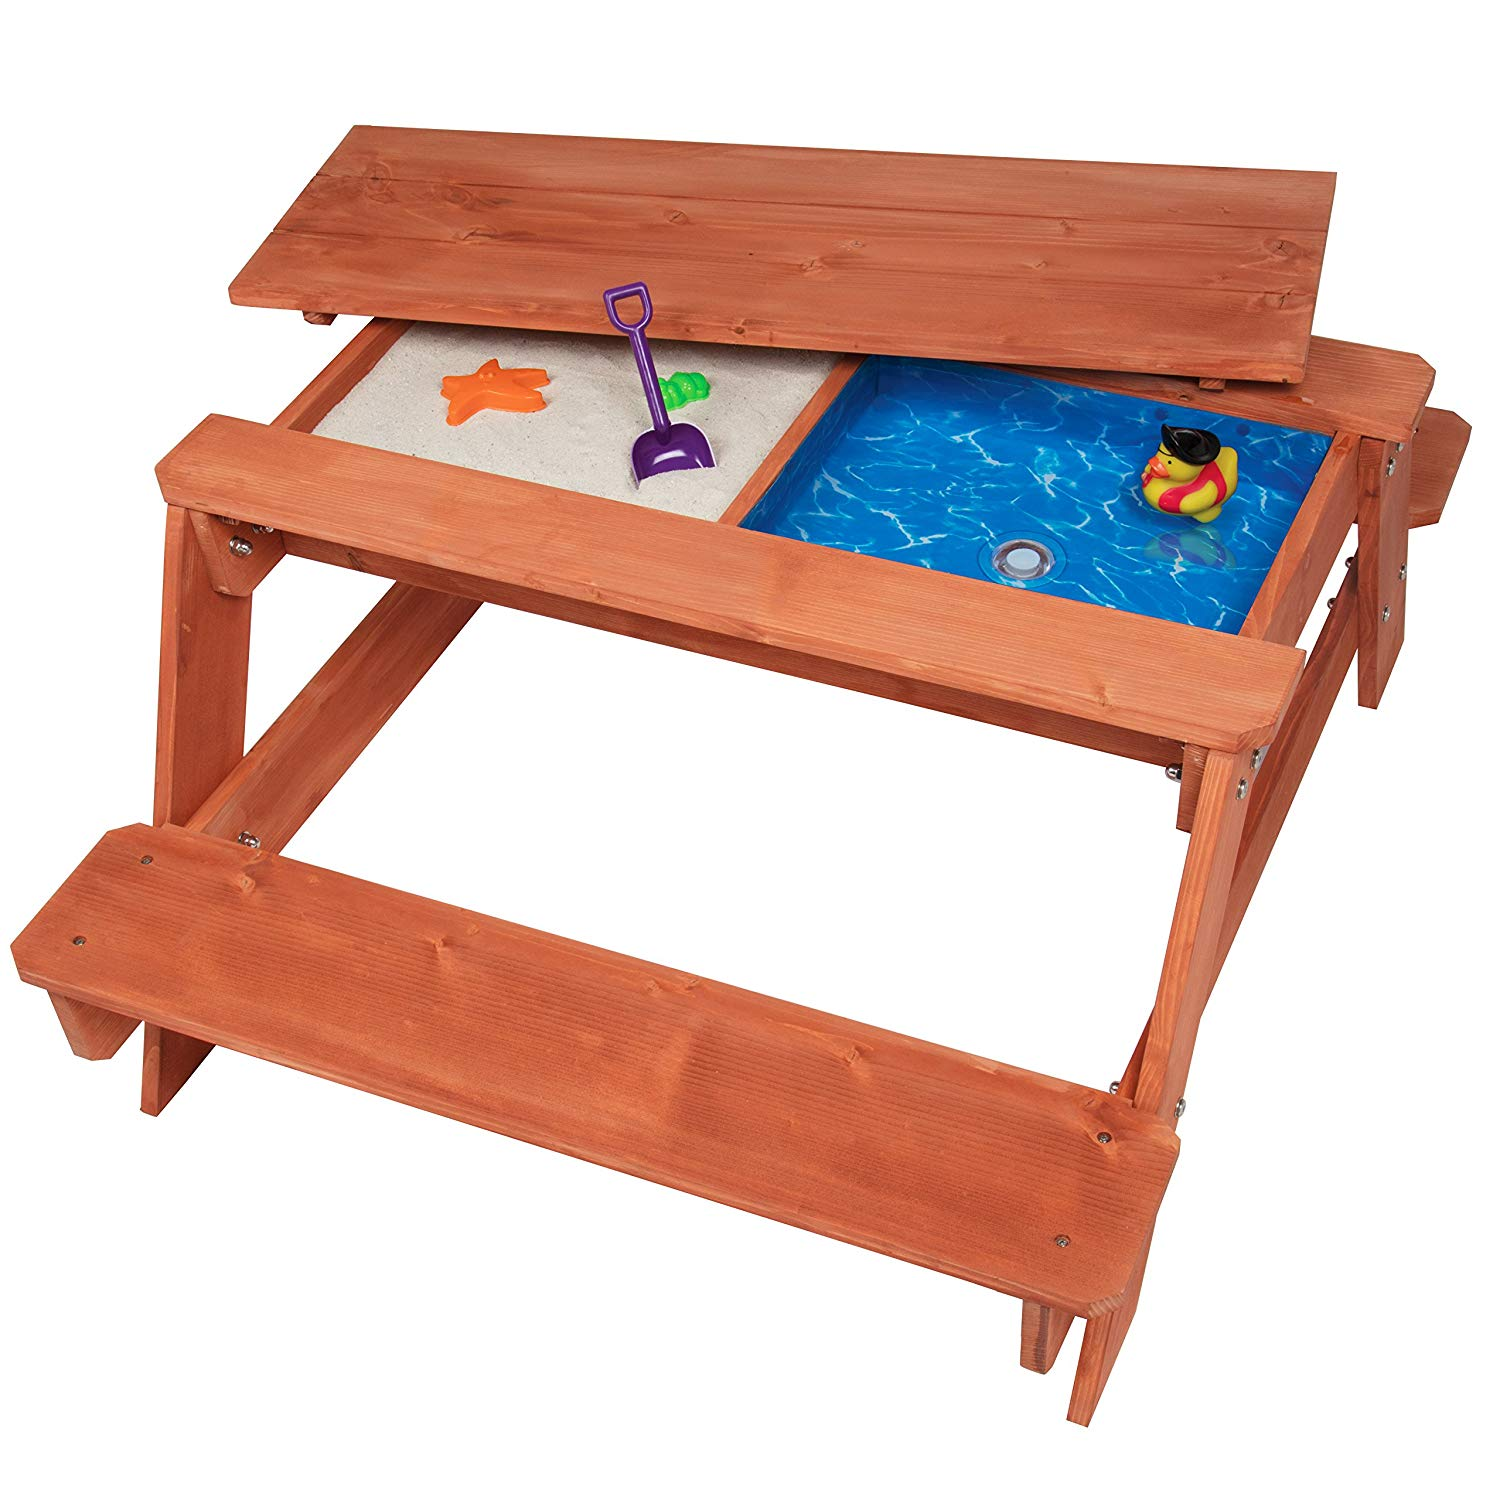 Brilliant Kids Picnic Table And Chairs Set W Cushions Outdoor Wooden Desk And Benches Sand And Water Table Patio Dining Playful Wood Table 2 Large Storage Download Free Architecture Designs Scobabritishbridgeorg